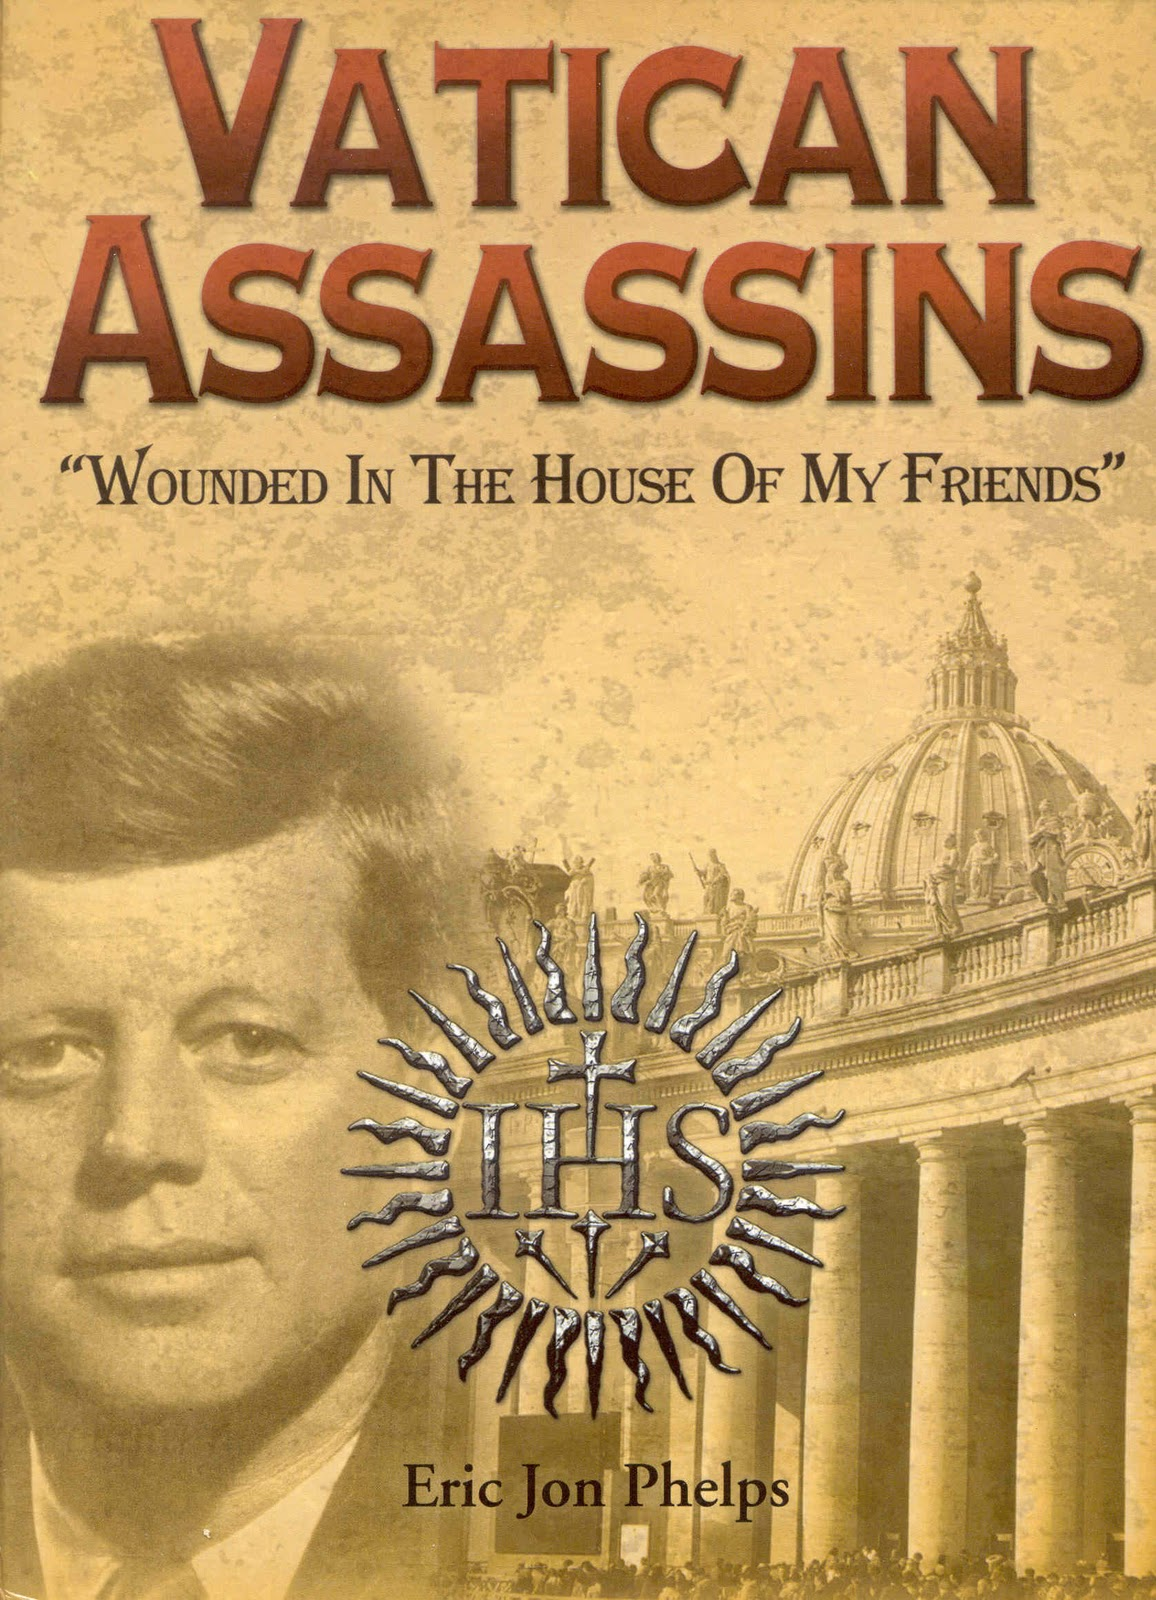 JFK vatican assasins eric jon phelps reformation book